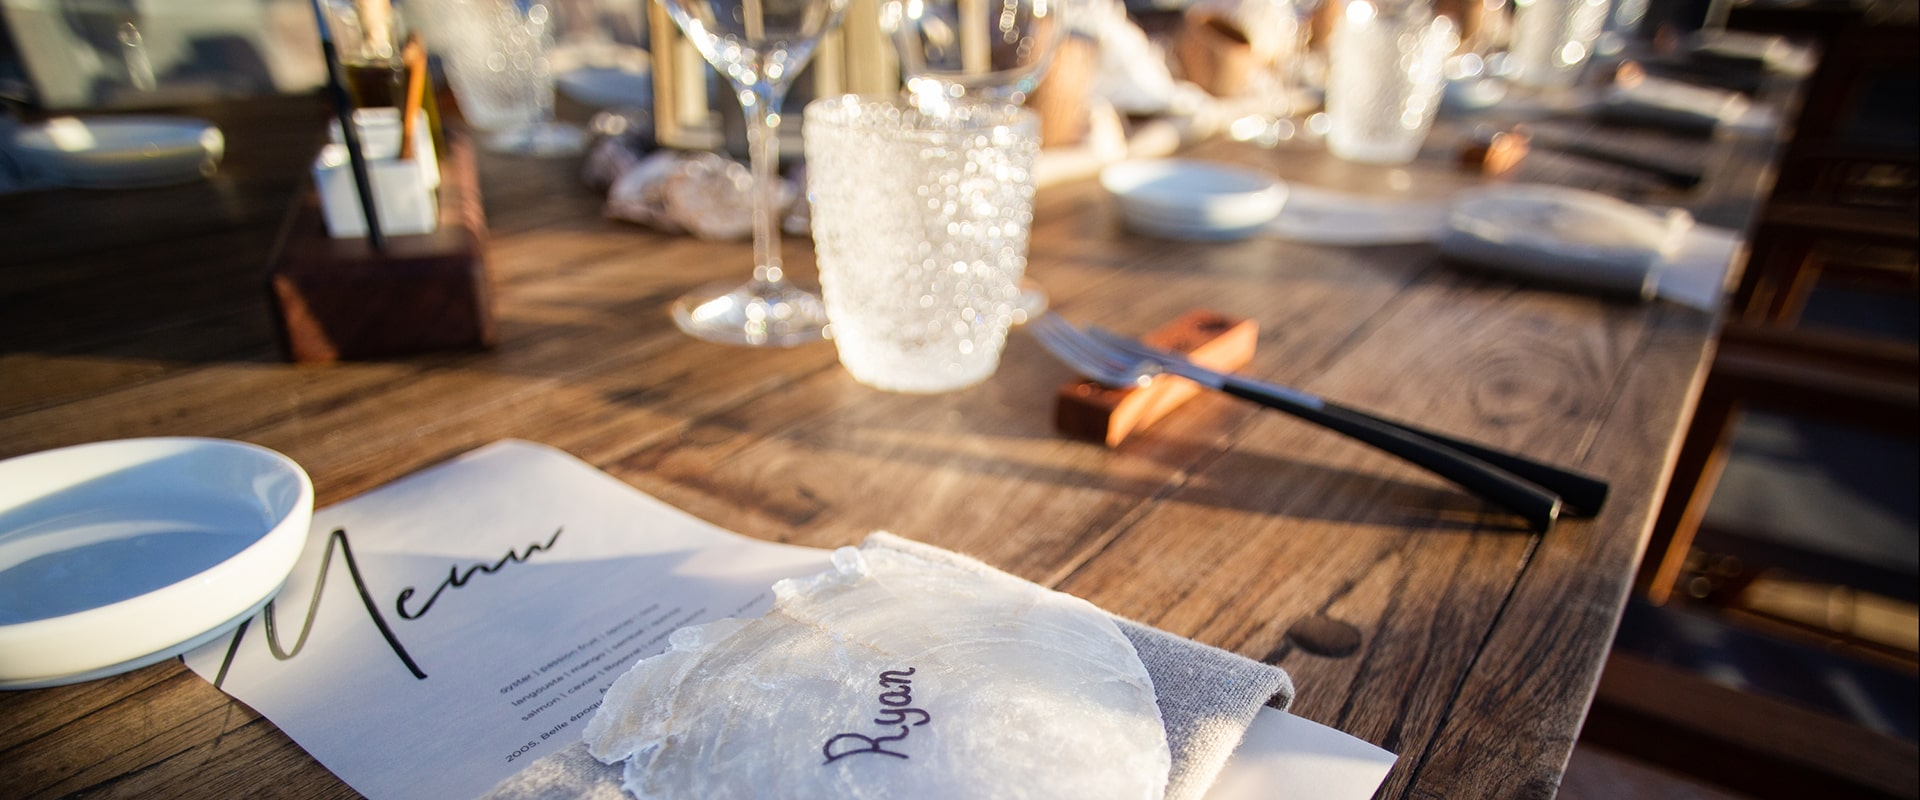 WINE AND DINE EVENTS